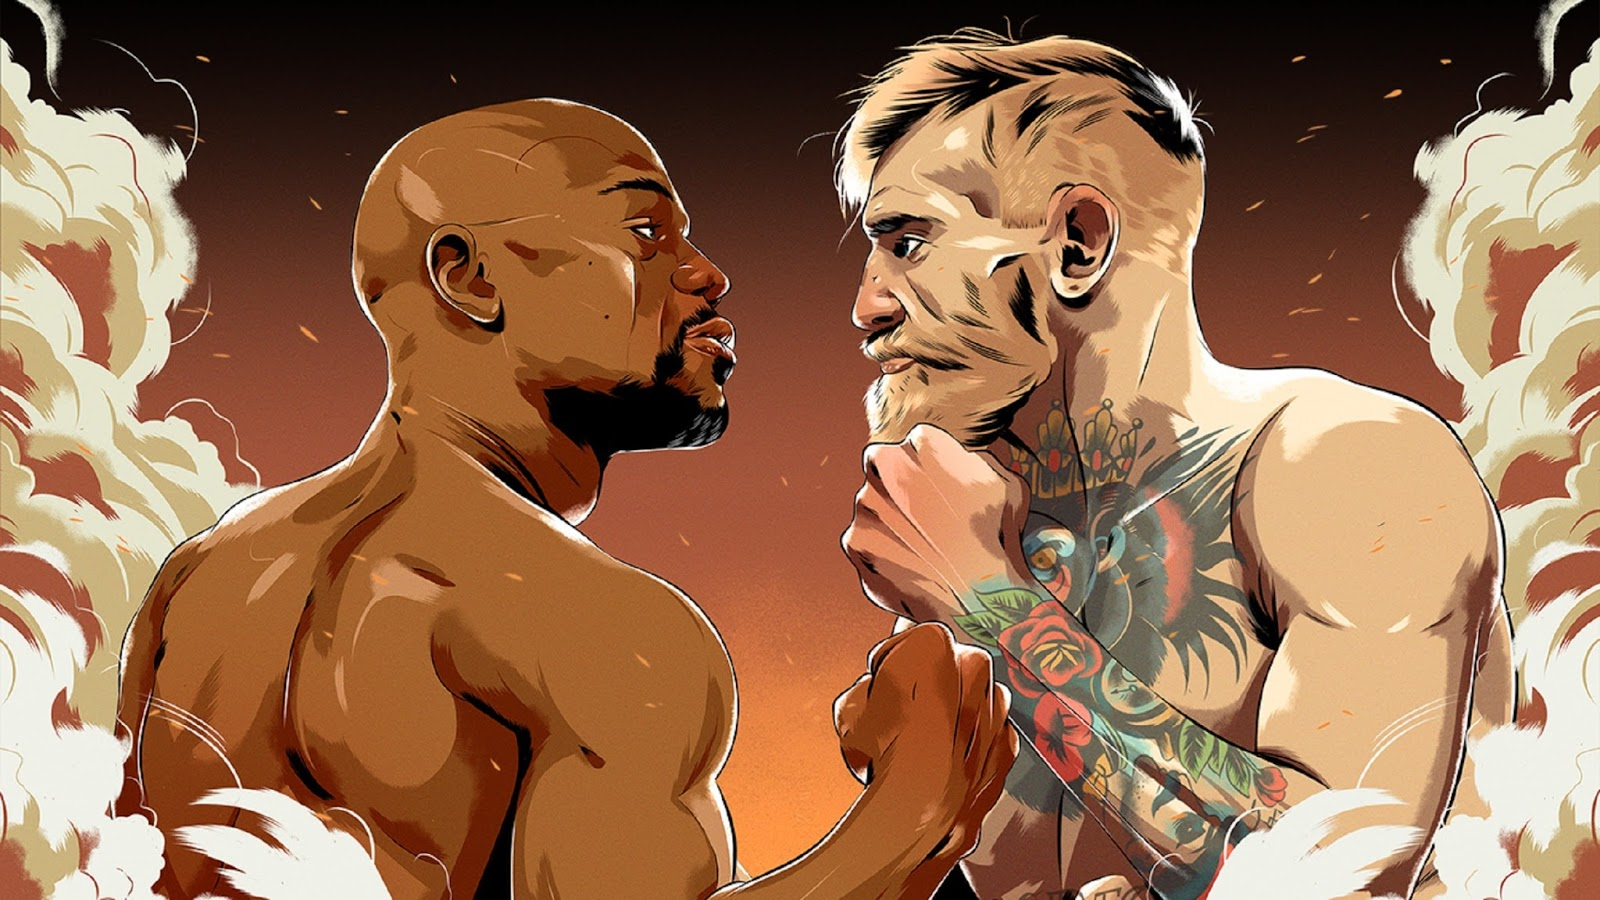 FLOYD MAYWEATHER VS. CONOR MCGREGOR 19